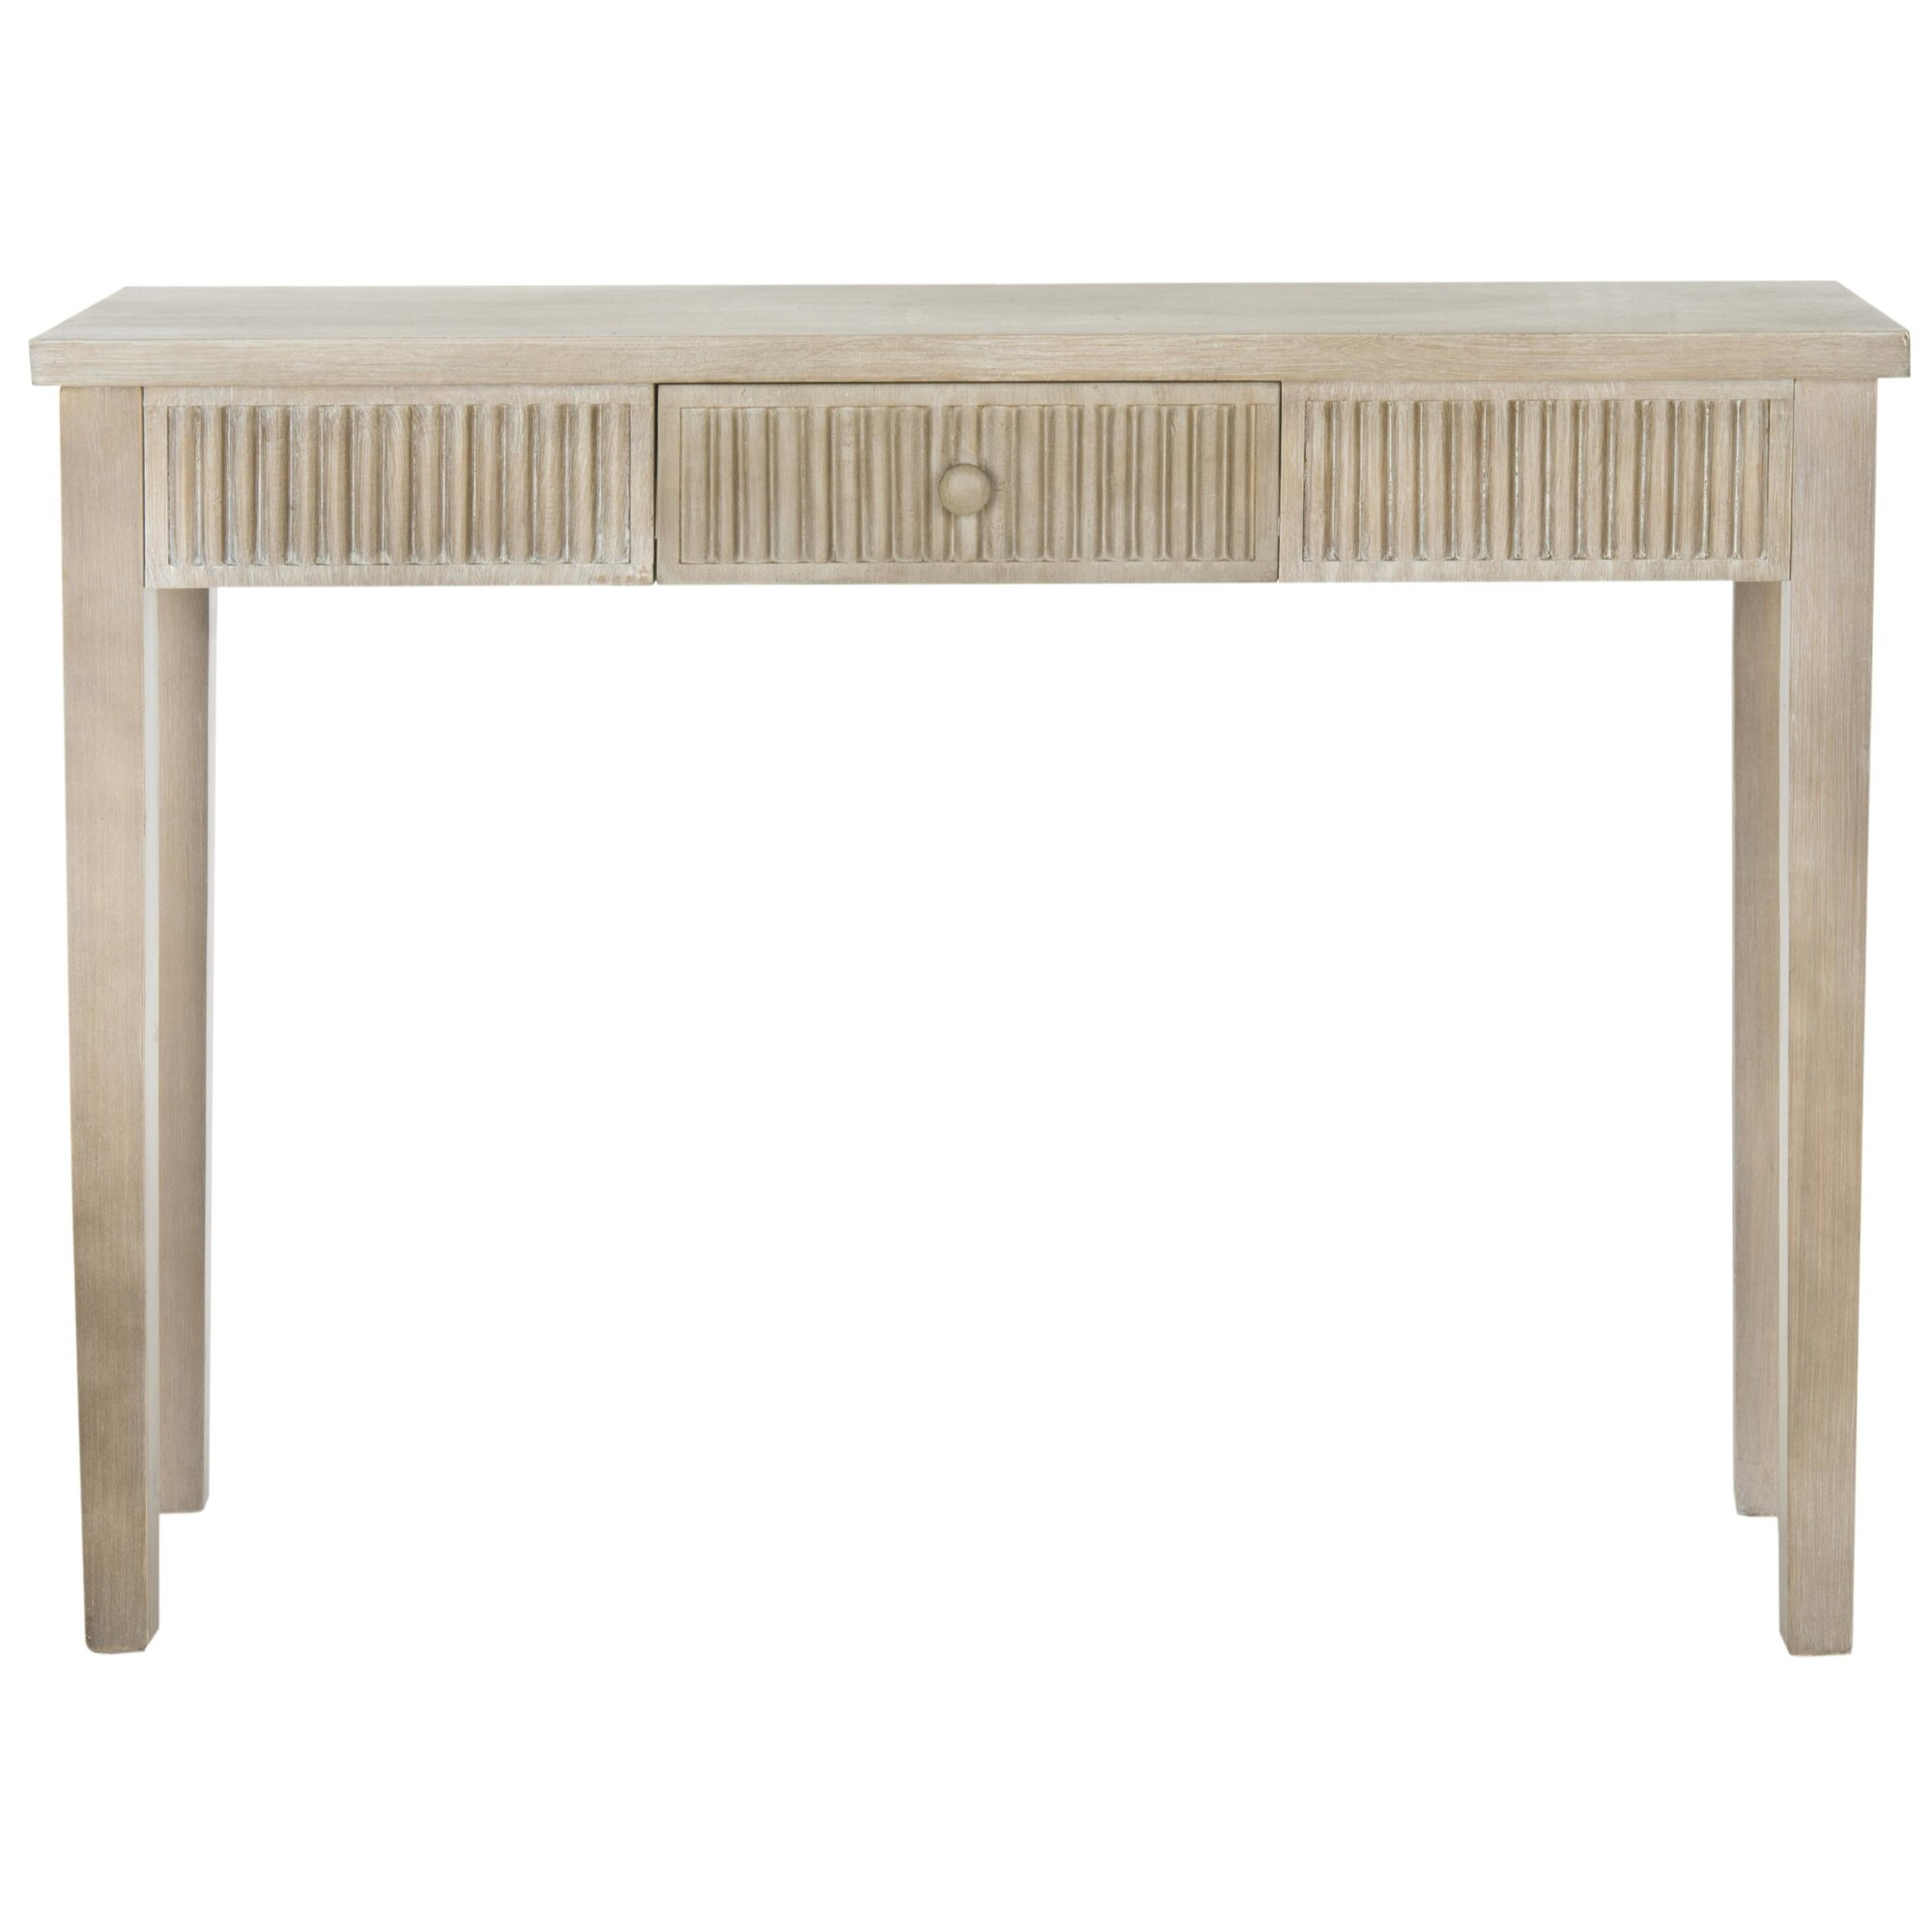 Contemporary console table - Pomona Park Contemporary Console Table